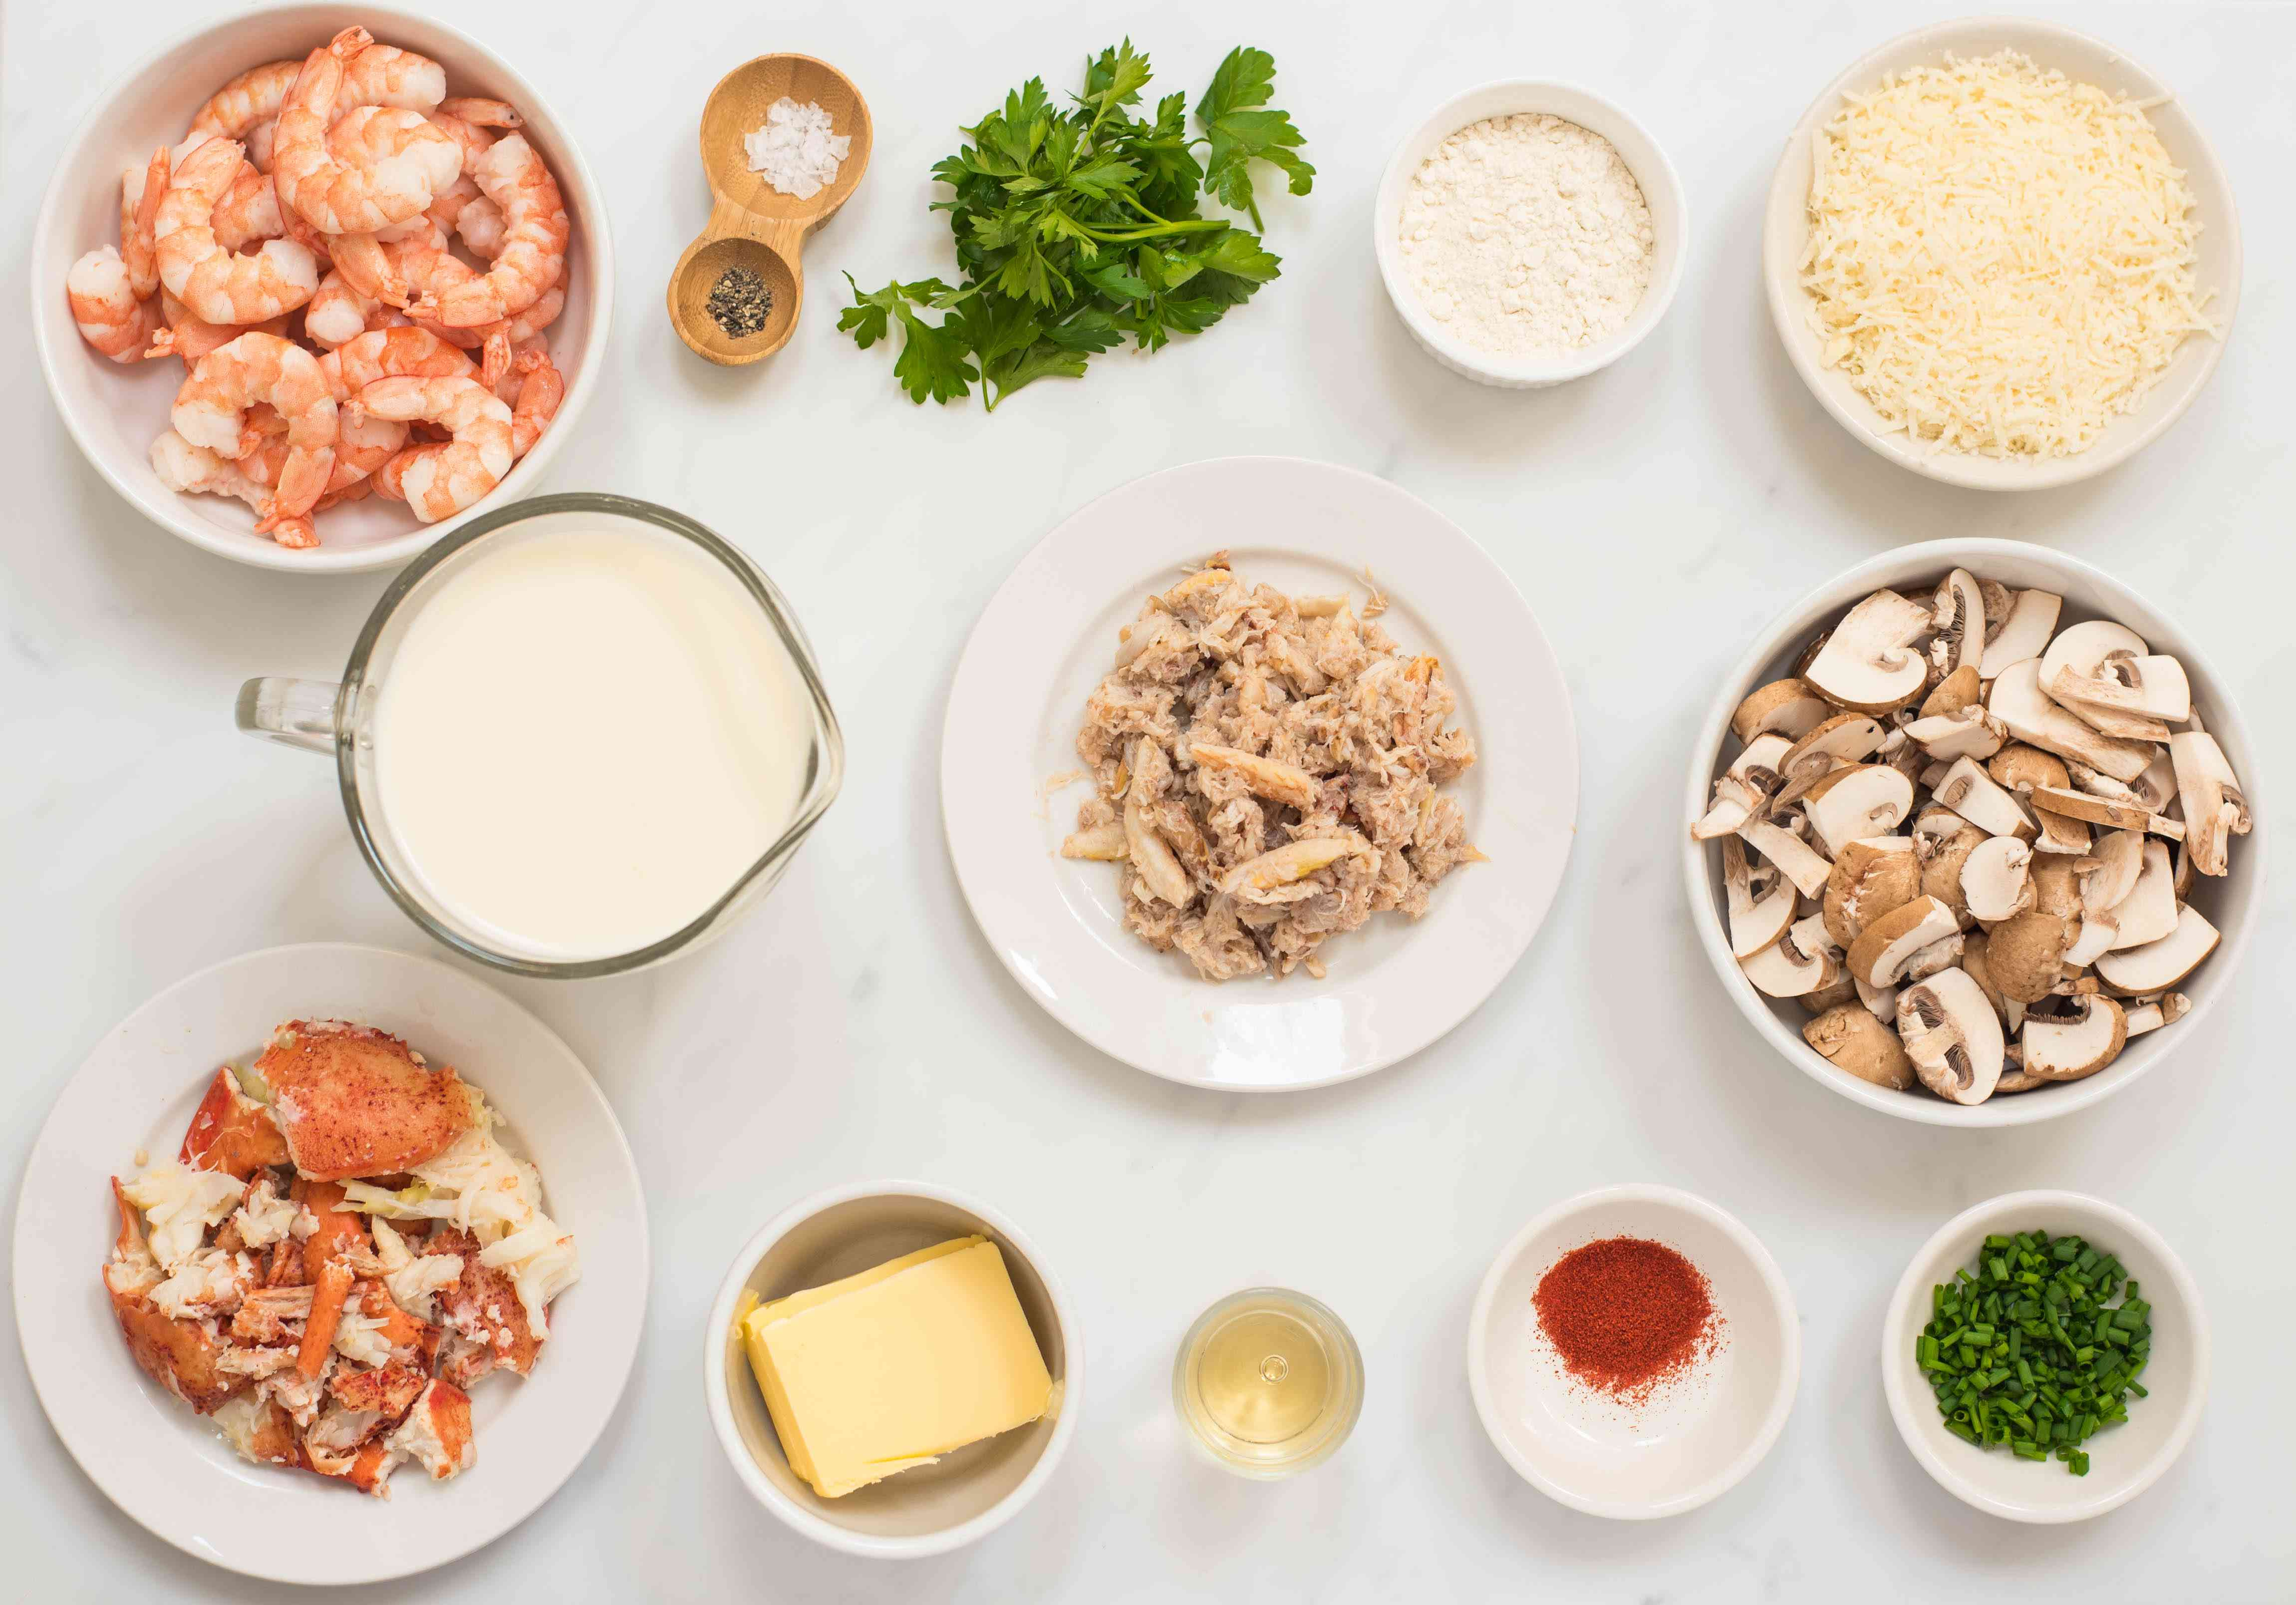 Gather ingredients for seafood casserole